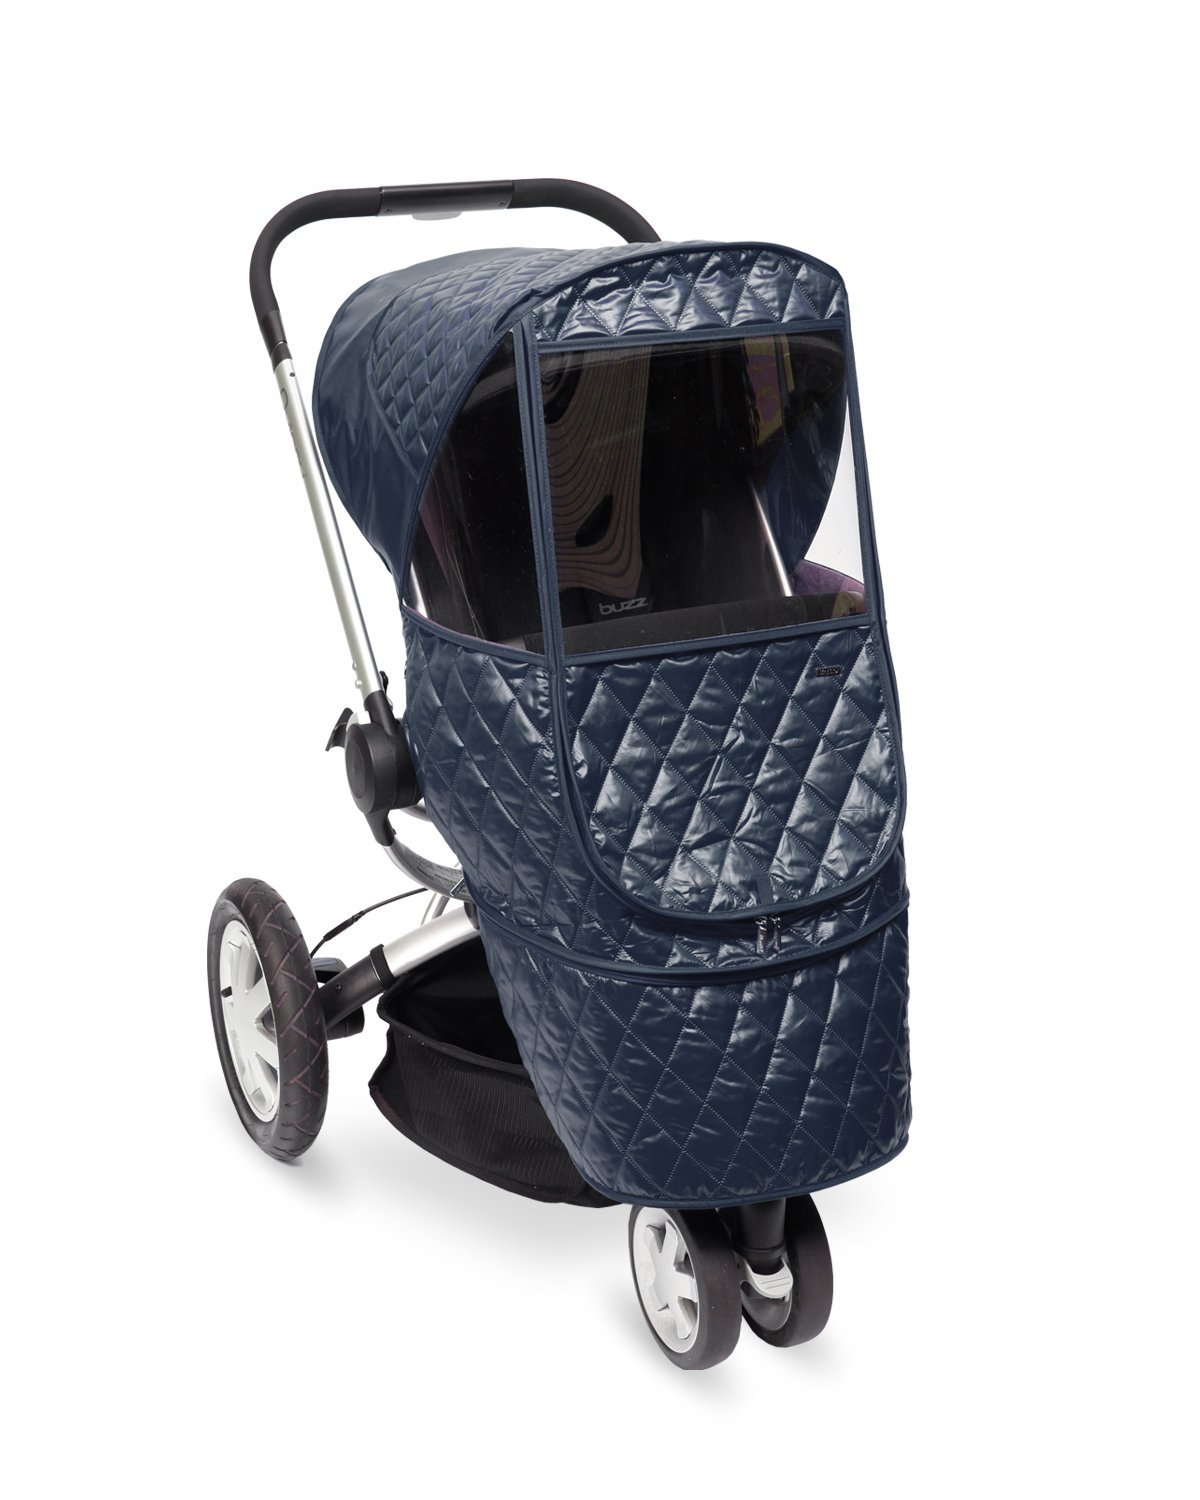 Manito Castle Beta Stroller Weather Shield (Navy) by Manito (Image #1)